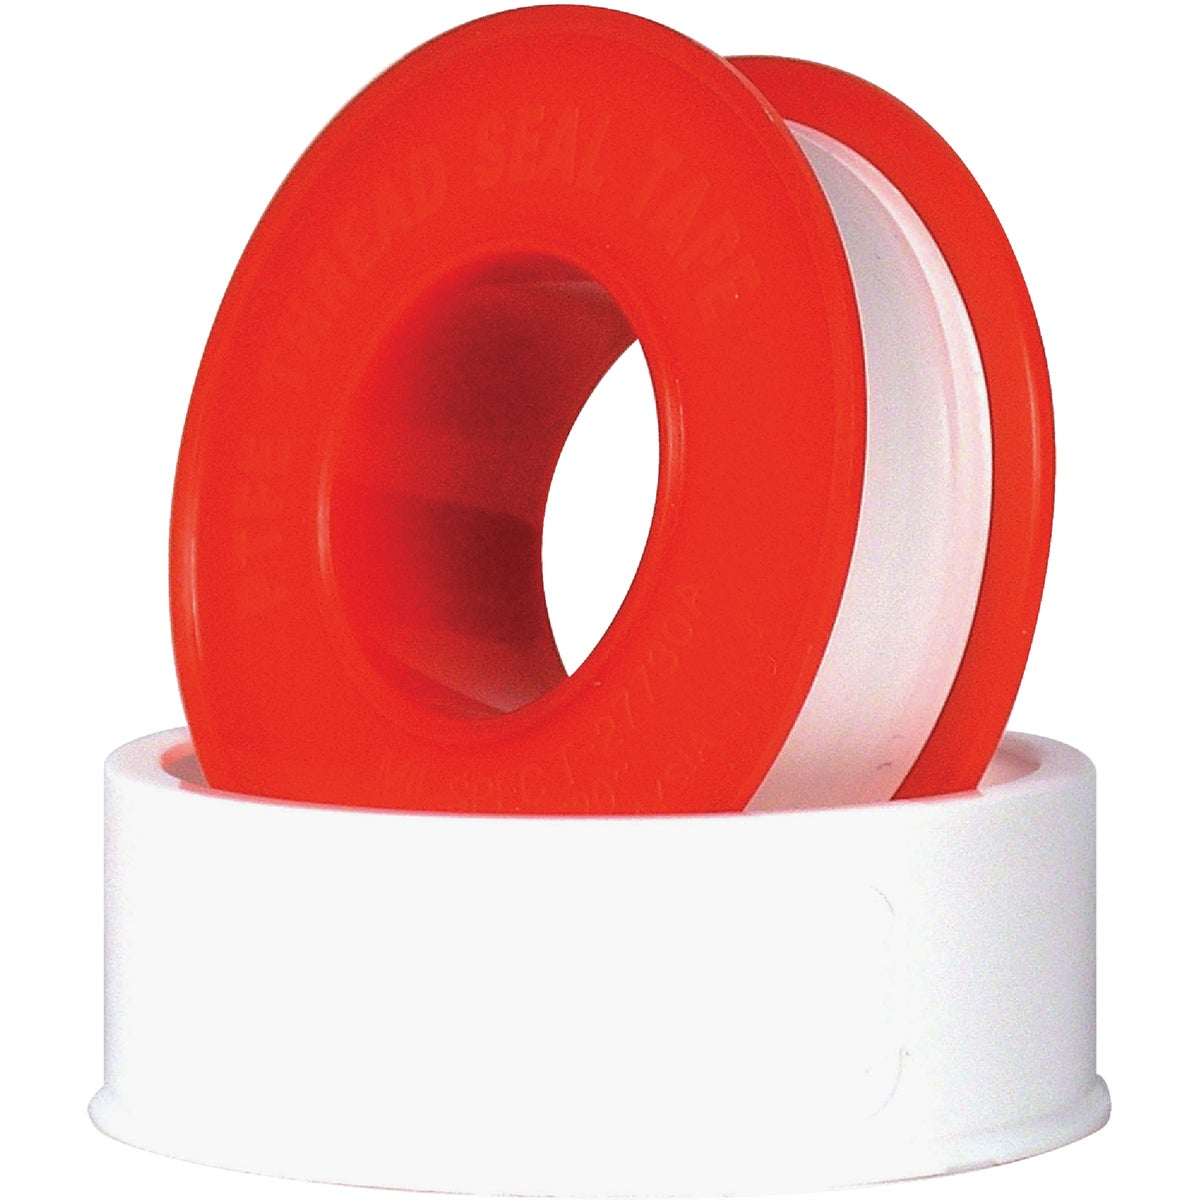 1/2X520 PTFE TAPE - 017120 by Wm H Harvey Co